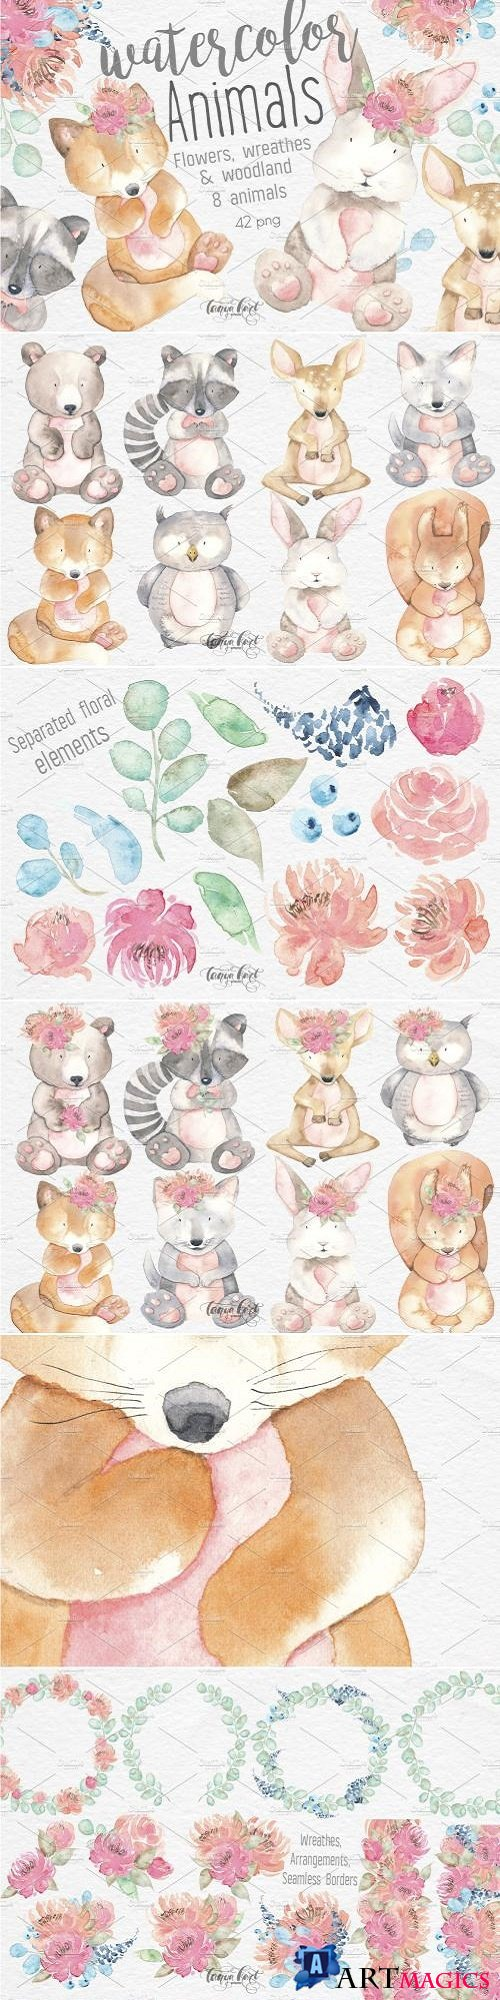 Watercolor Animals Flowers Clipart - 2540165